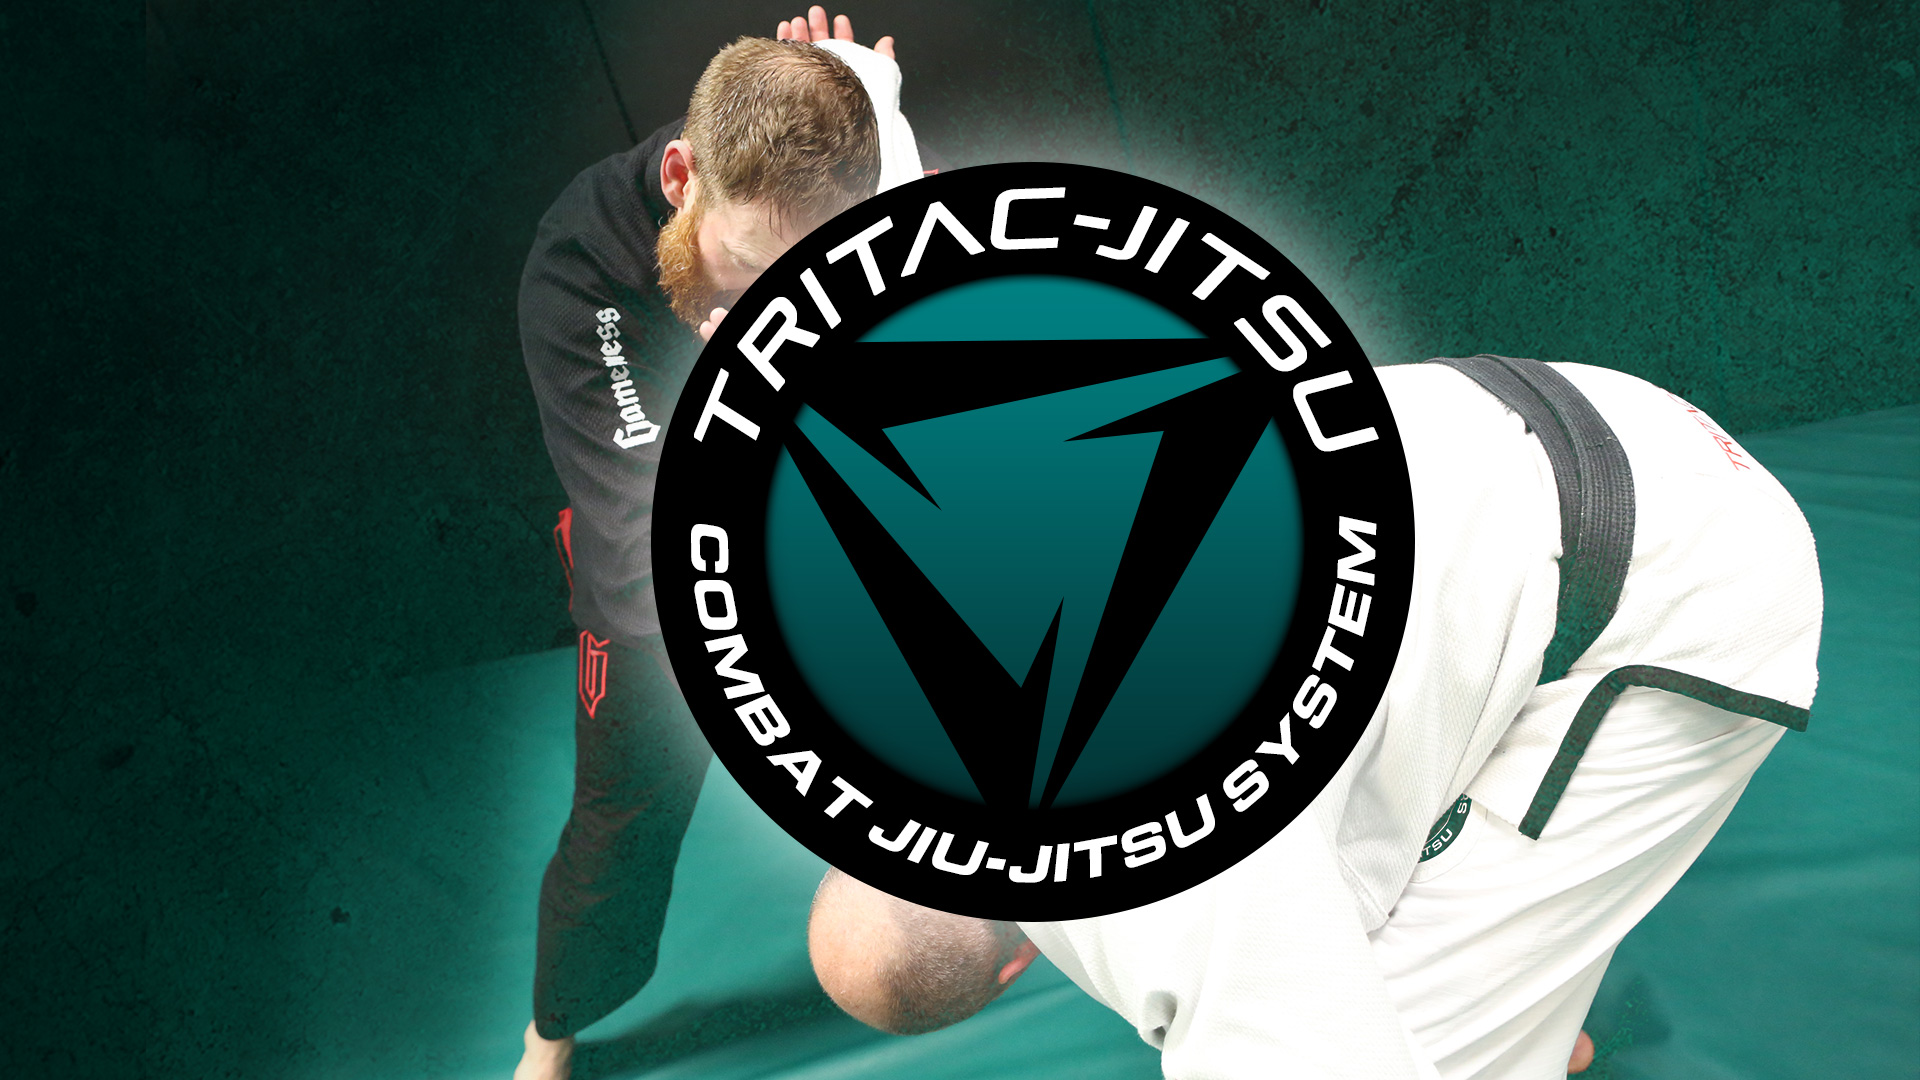 TRITAC-Jitsu: White-Blue Belt